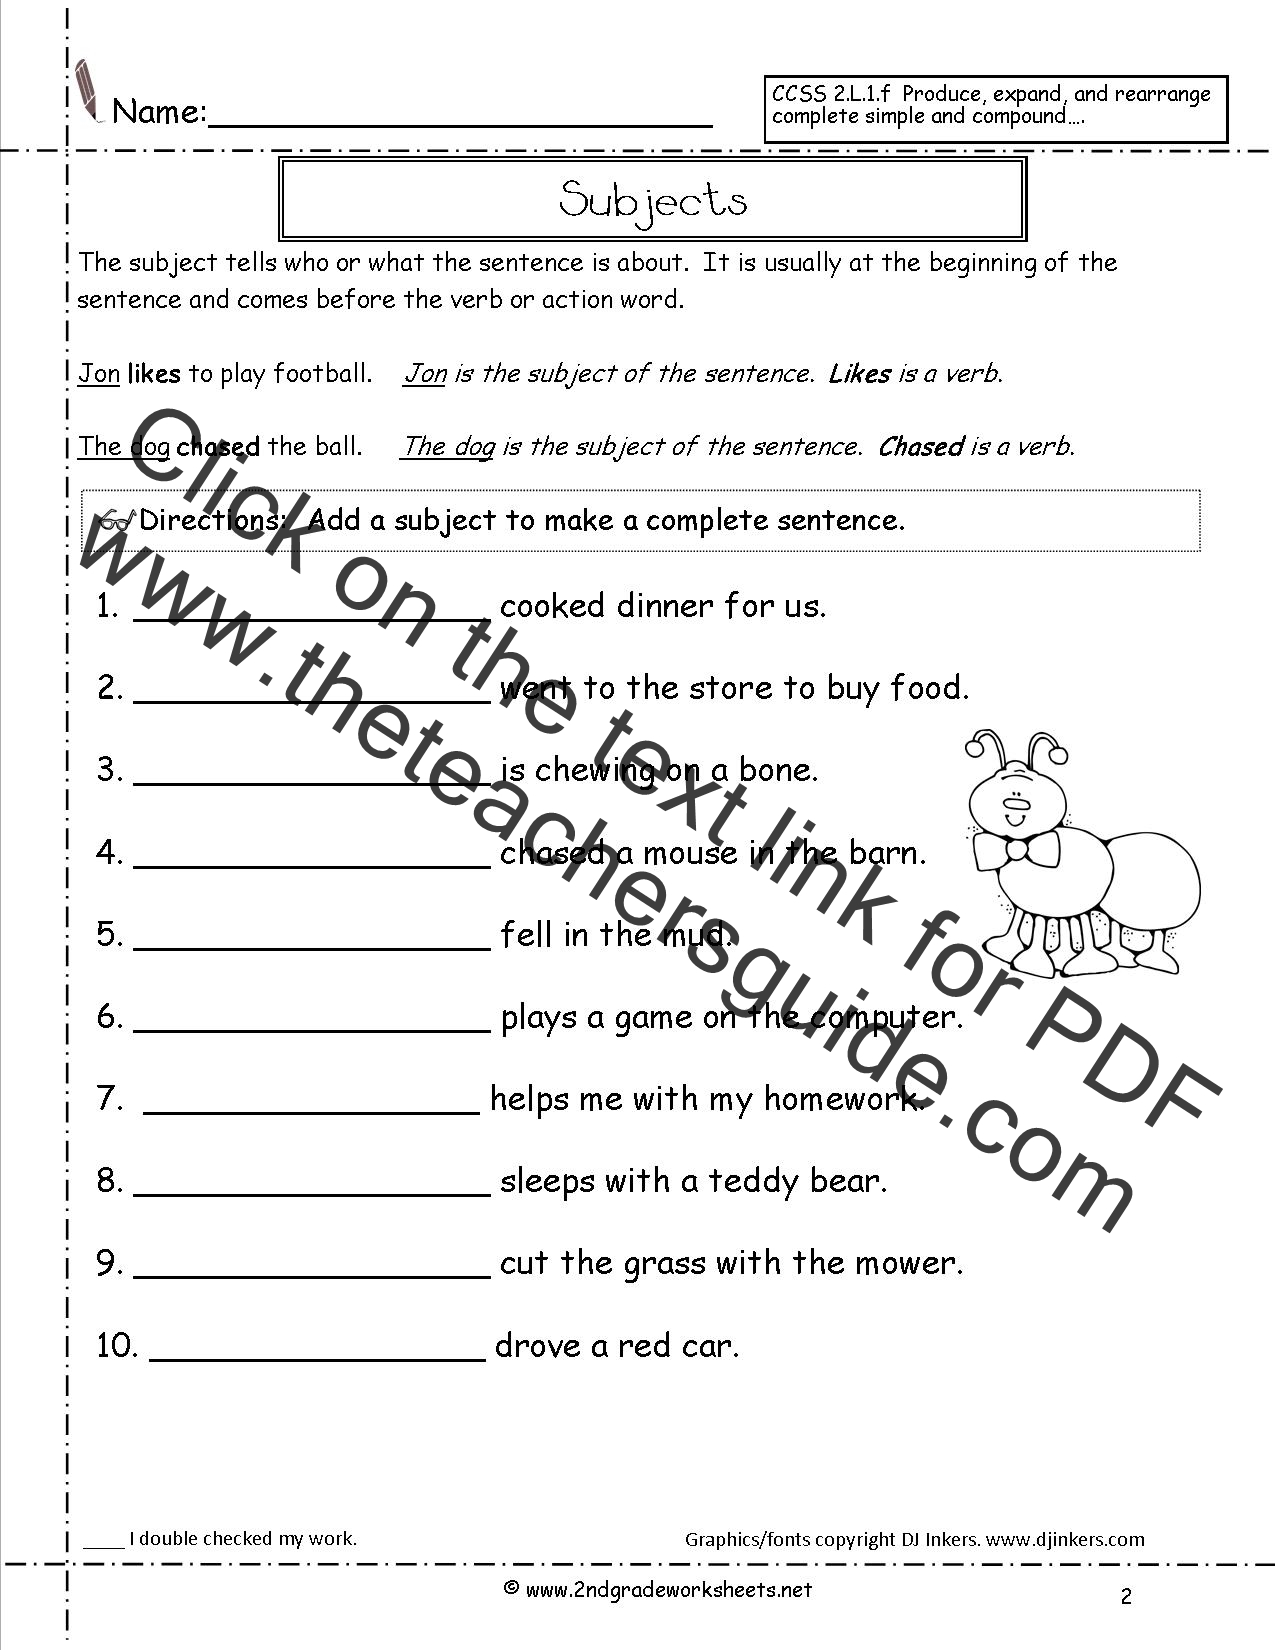 worksheet 4 Types Of Sentences Worksheets second grade sentences worksheets ccss 2 l 1 f subjects worksheet sentence subjects